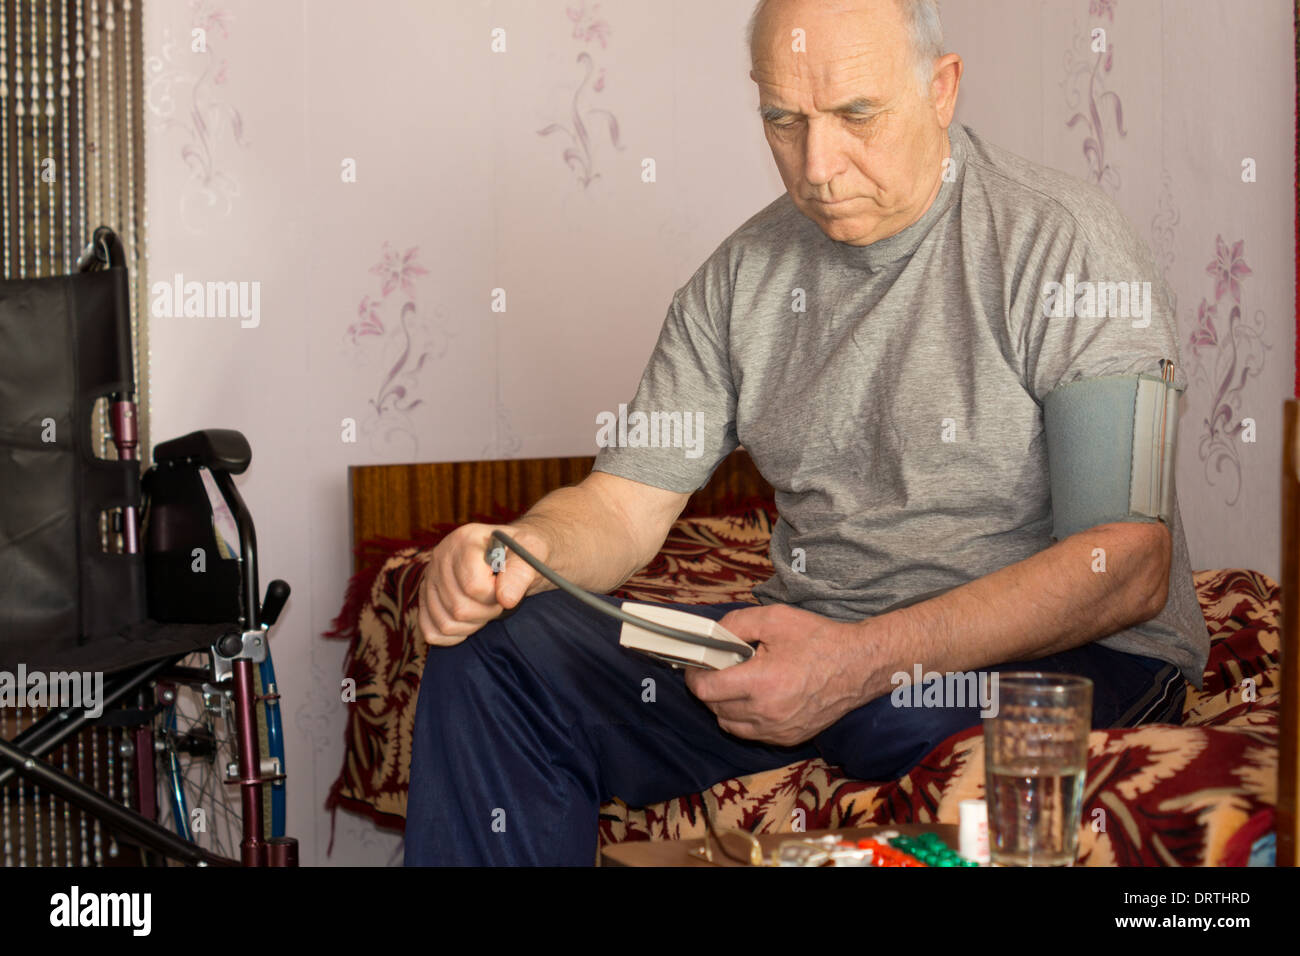 Senior disabled man taking his own blood pressure sitting on his bed alongside his wheelchair using a pressure cuff and sphygmomanometer. - Stock Image